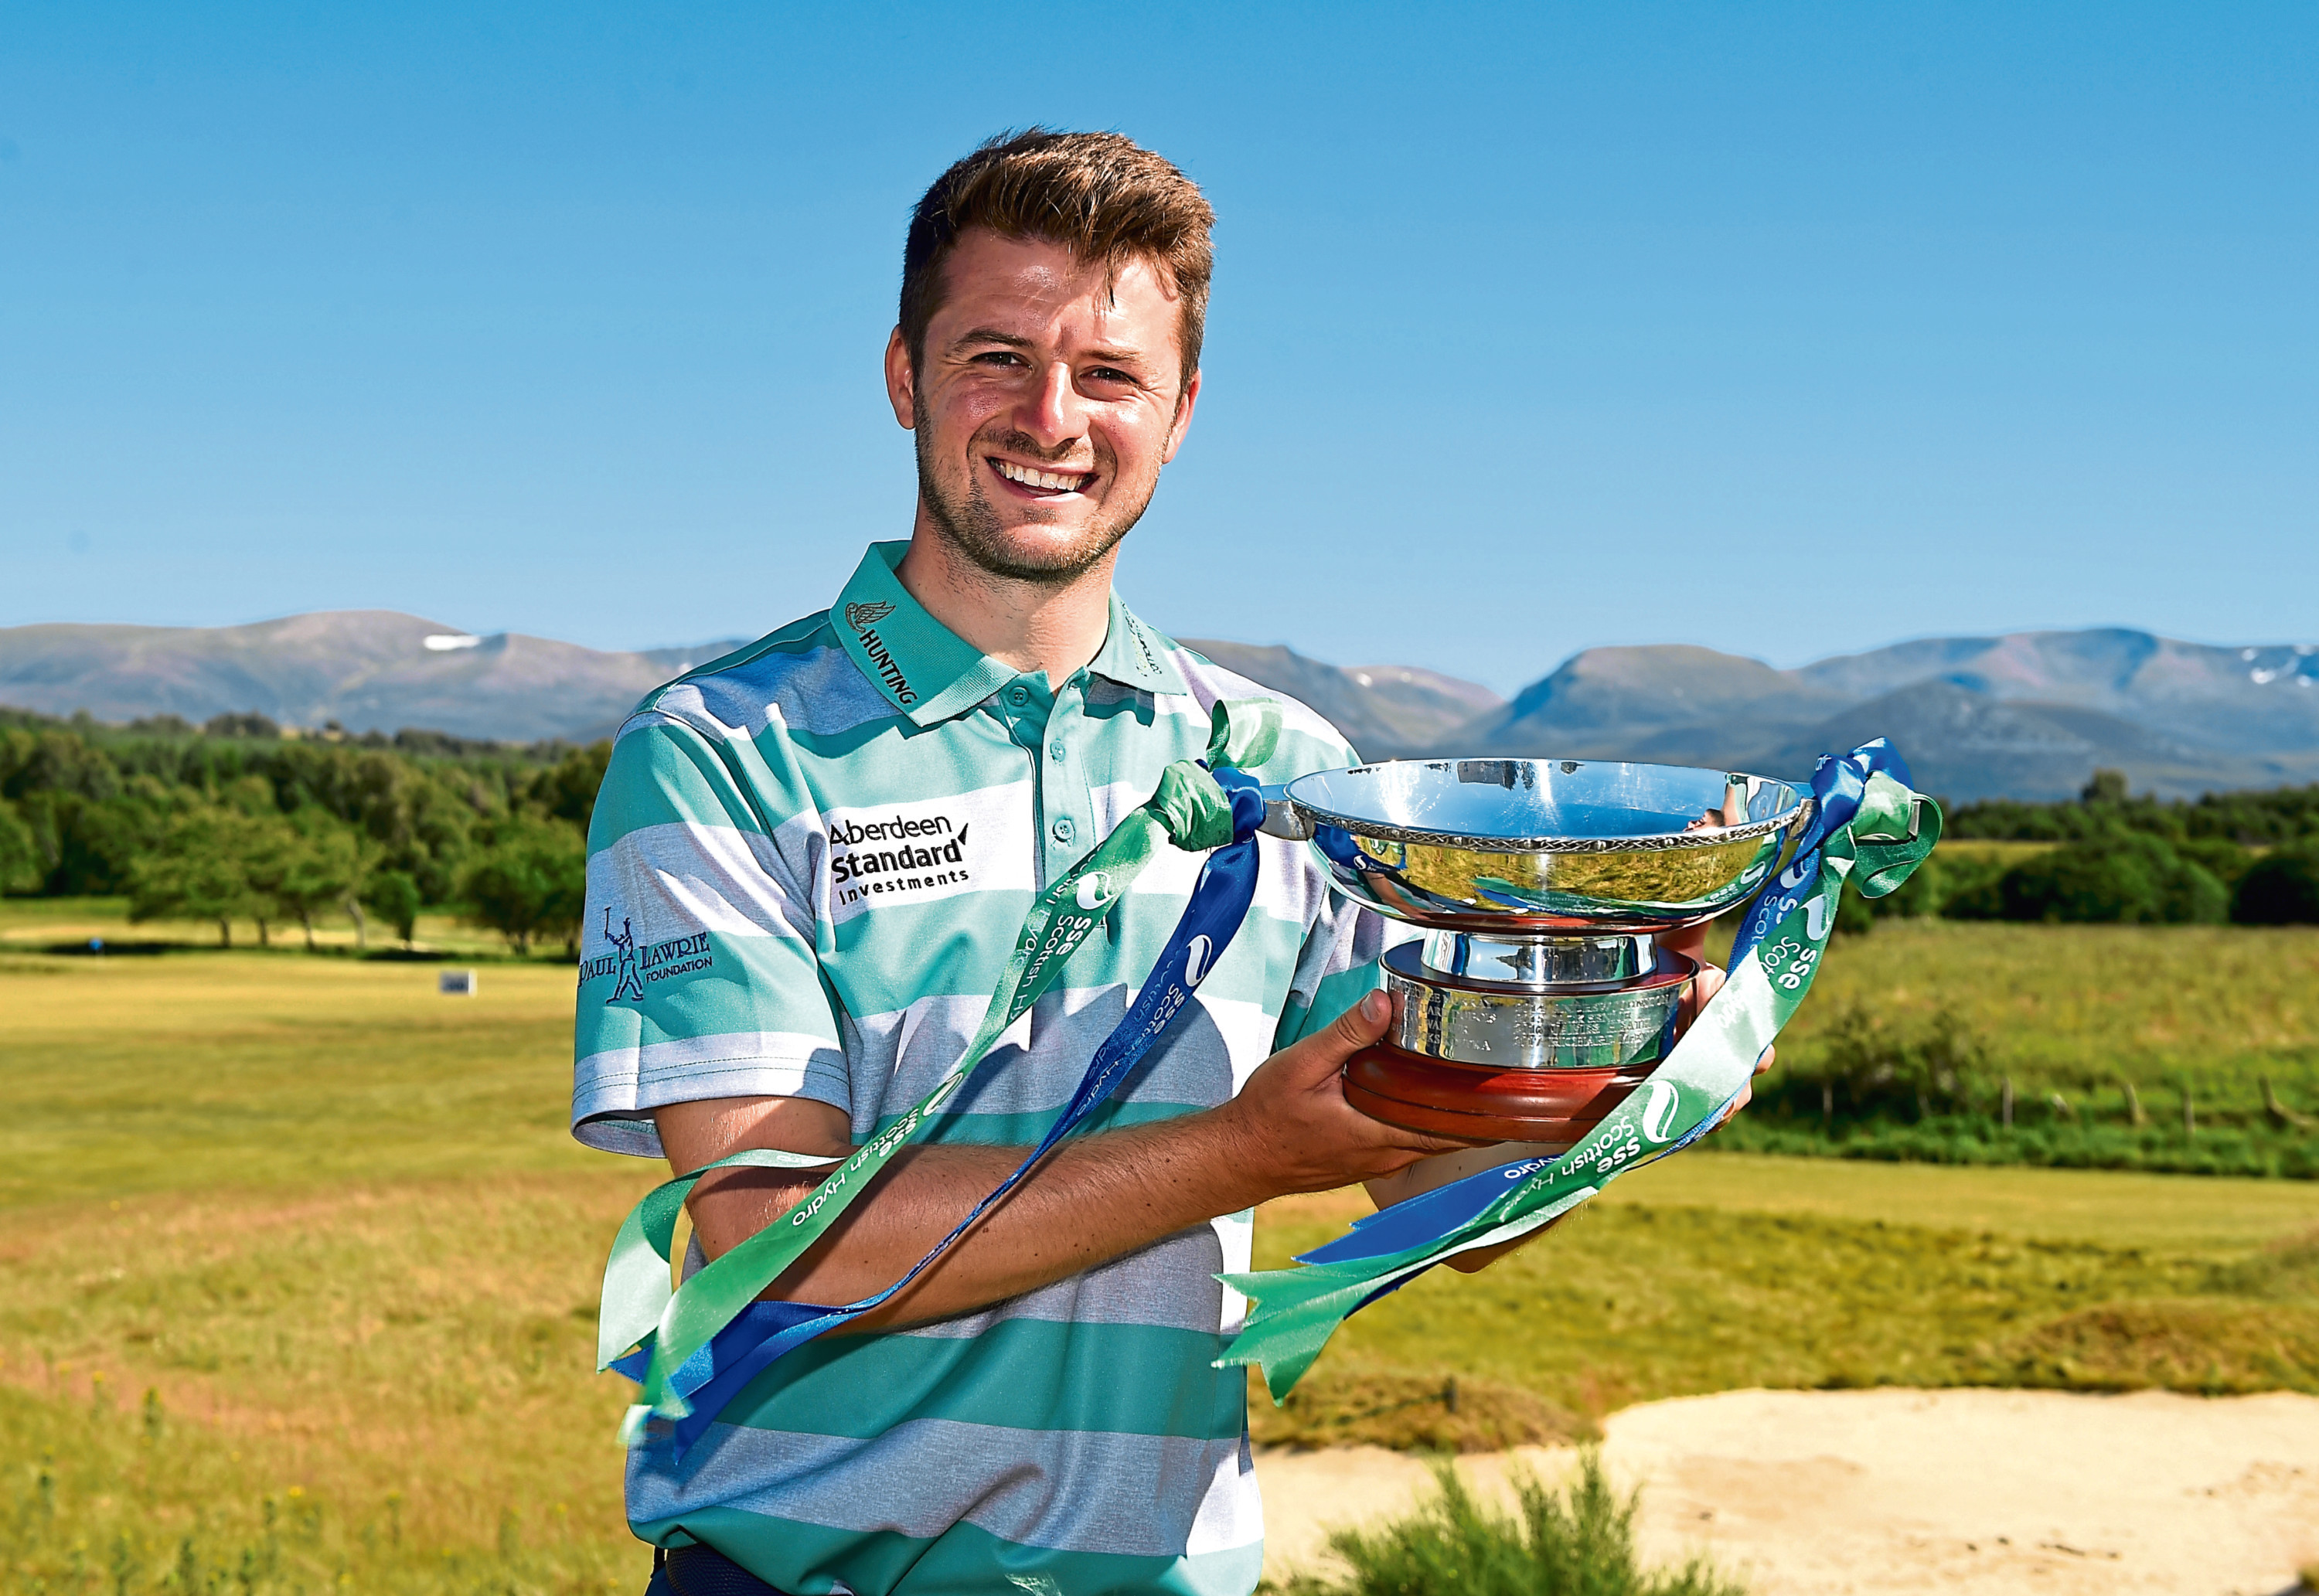 David Law, in his 100th event, had his first victory on the European Challenge Tour at the SSE Scottish Hydro Challenge presented by Macdonald Hotels.